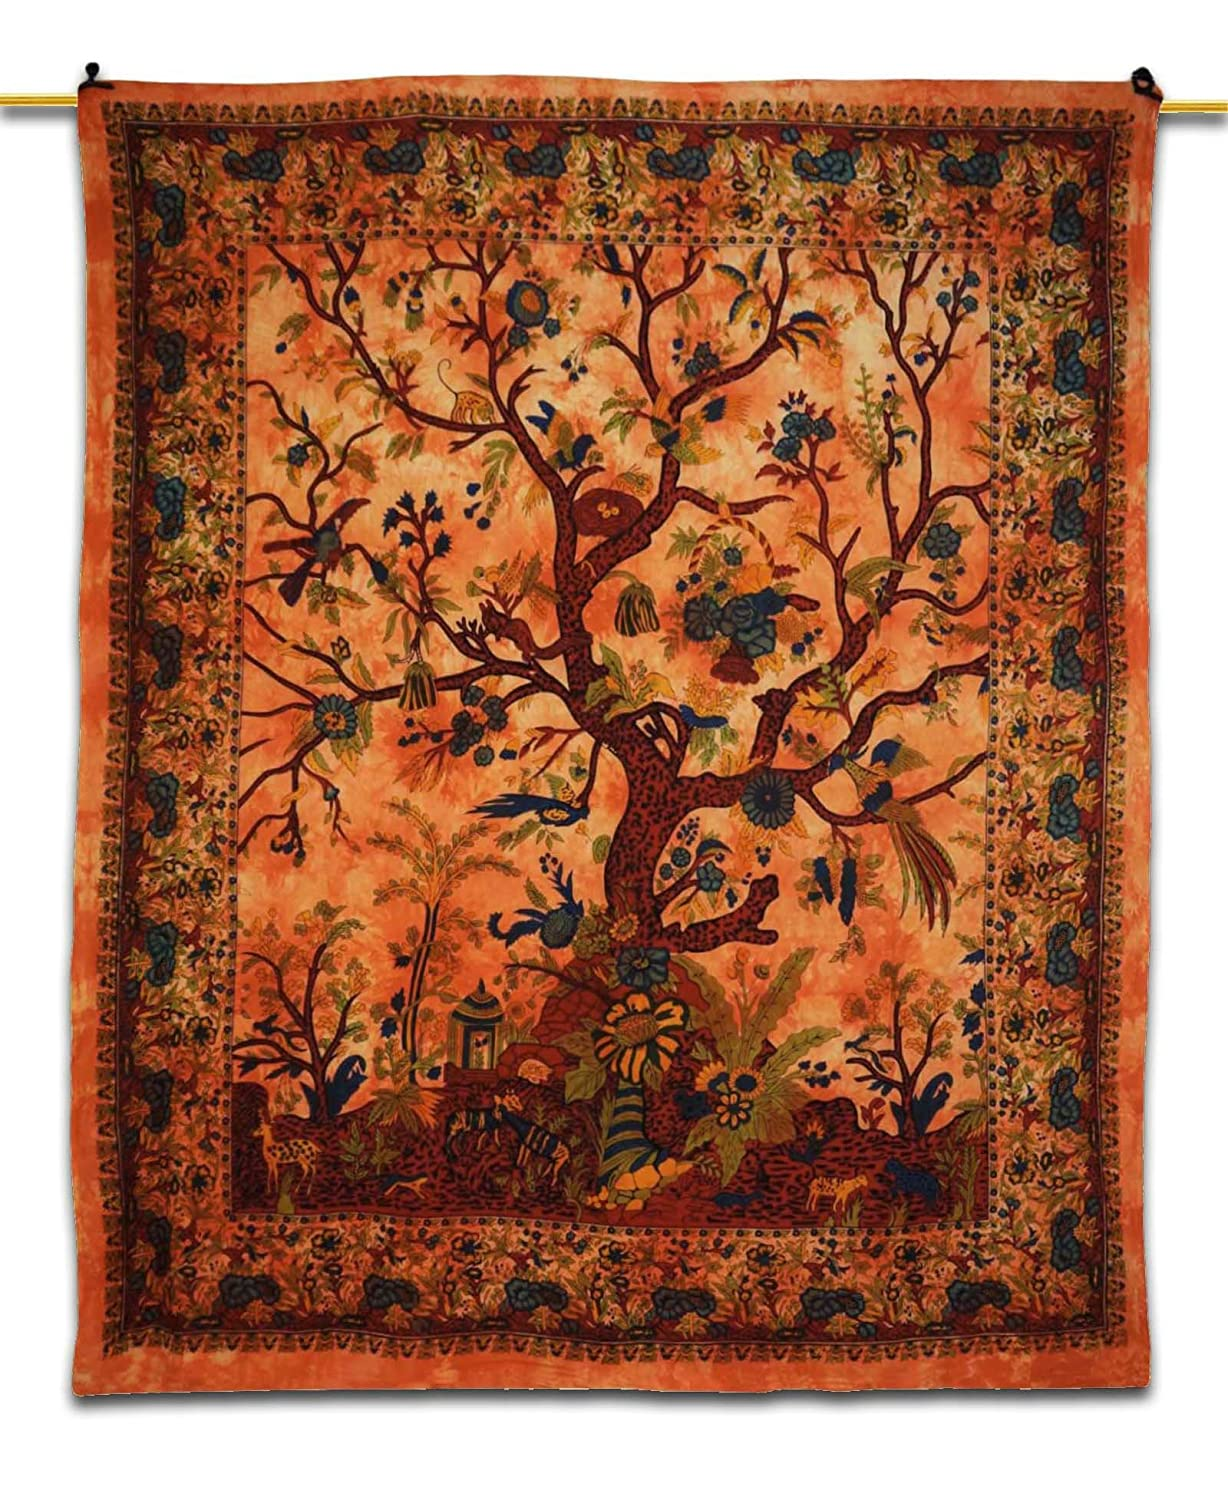 tree of life tapestry wall art hanging orange handmade bedsheet  - tree of life tapestry wall art hanging orange handmade bedsheet coverdecora amazoncouk kitchen  home